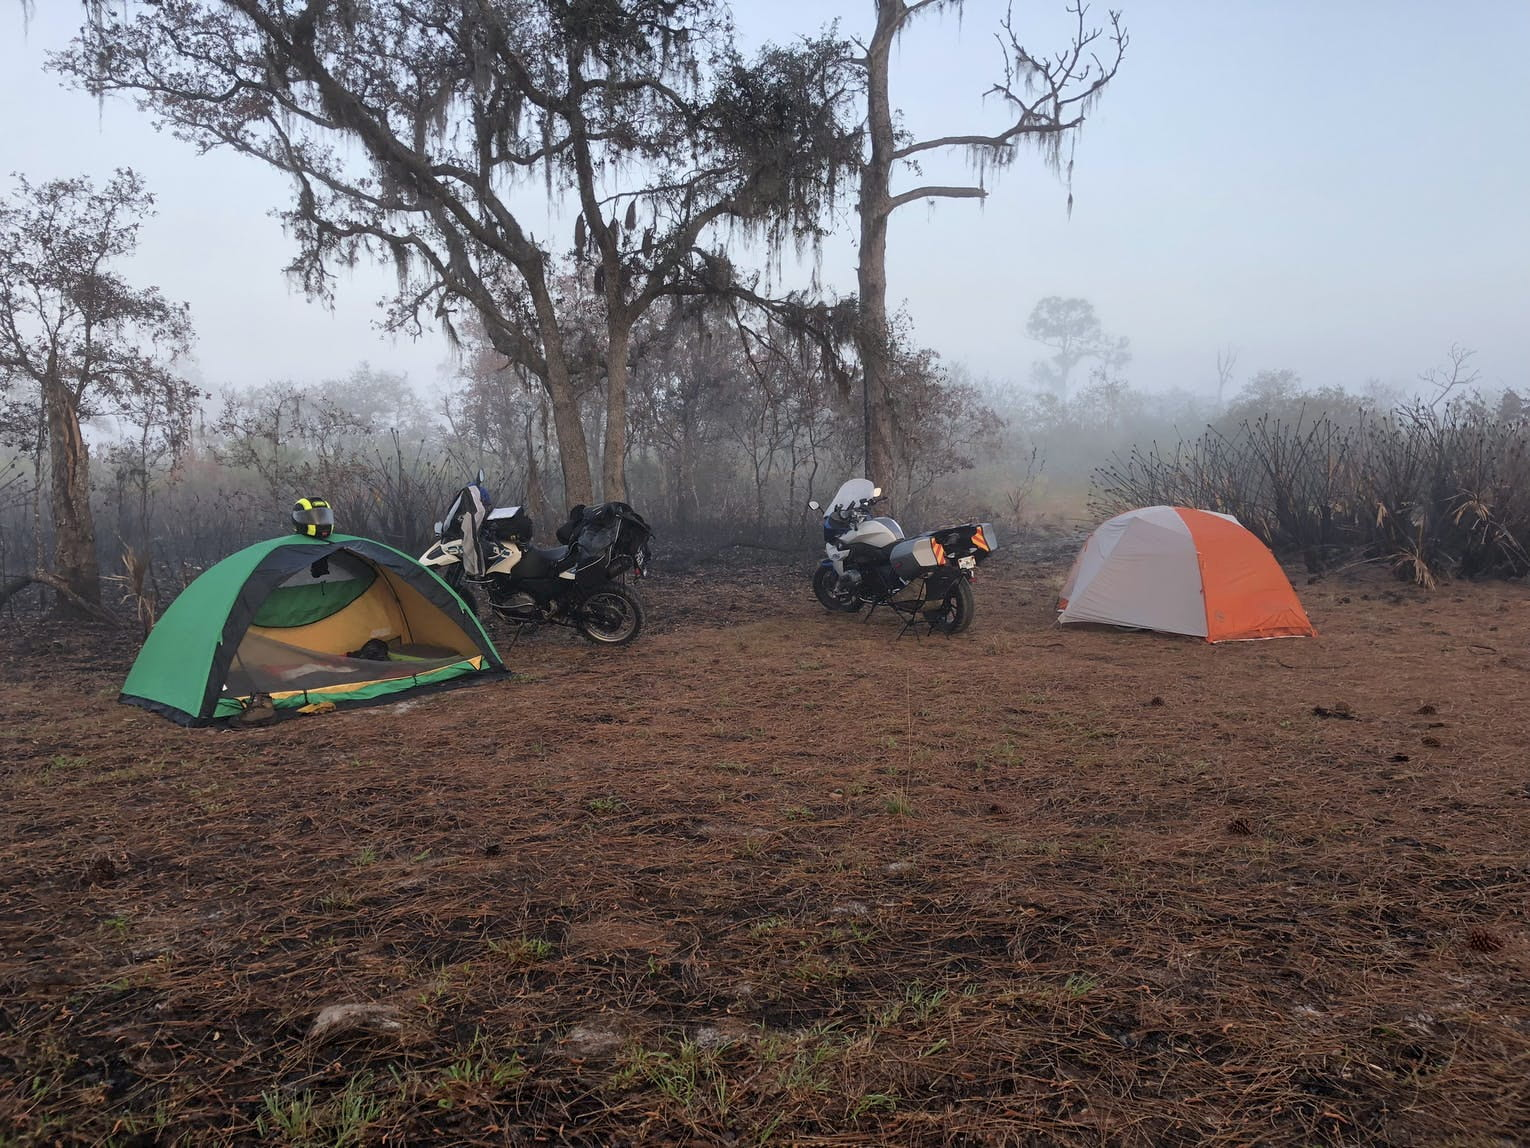 Two motorcycles parked besides two small tents in a foggy campsite.